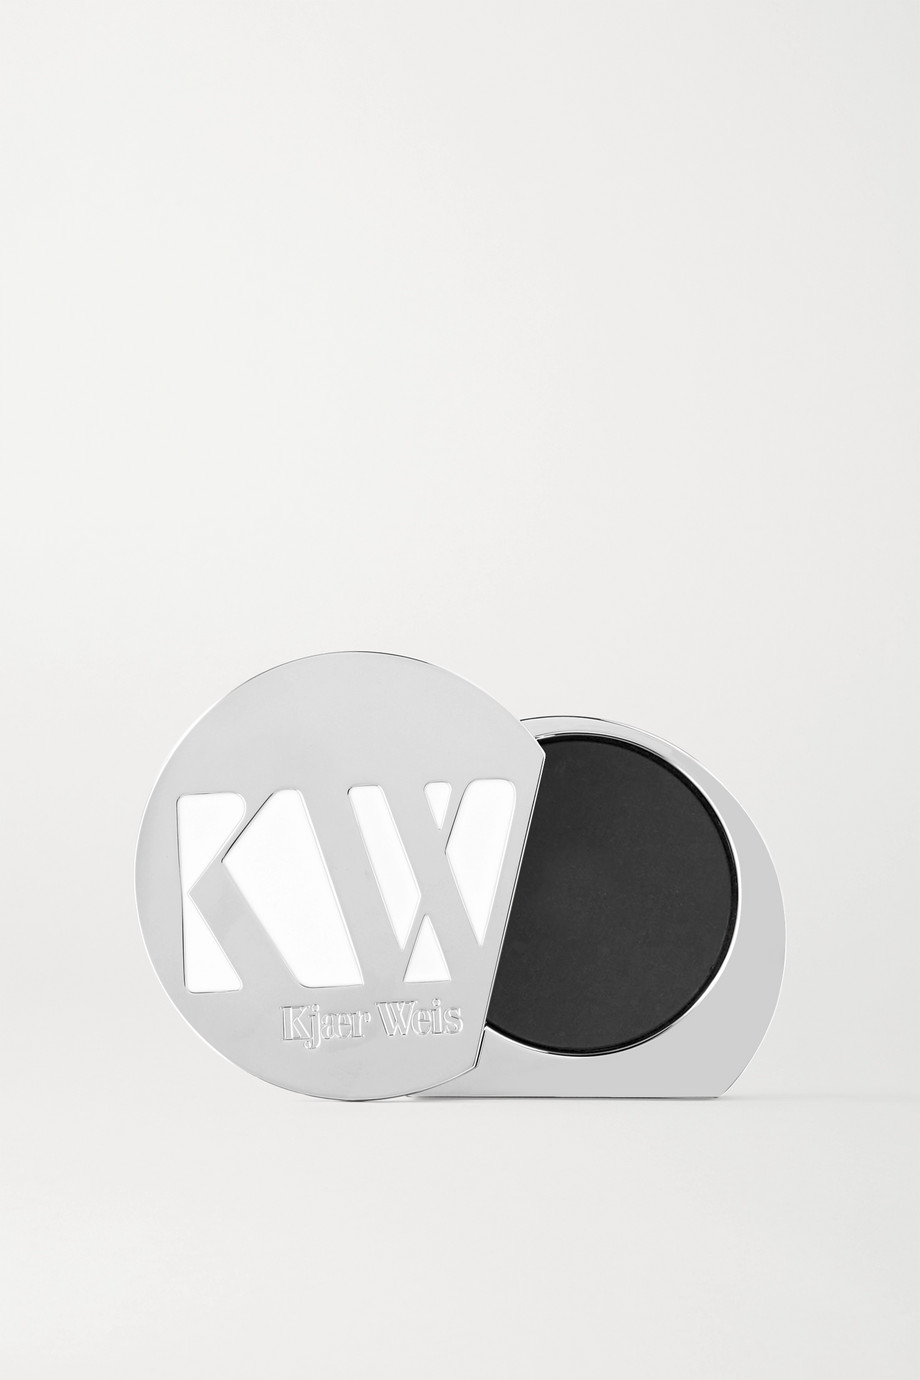 KJAER WEIS Iconic Edition Refillable Case